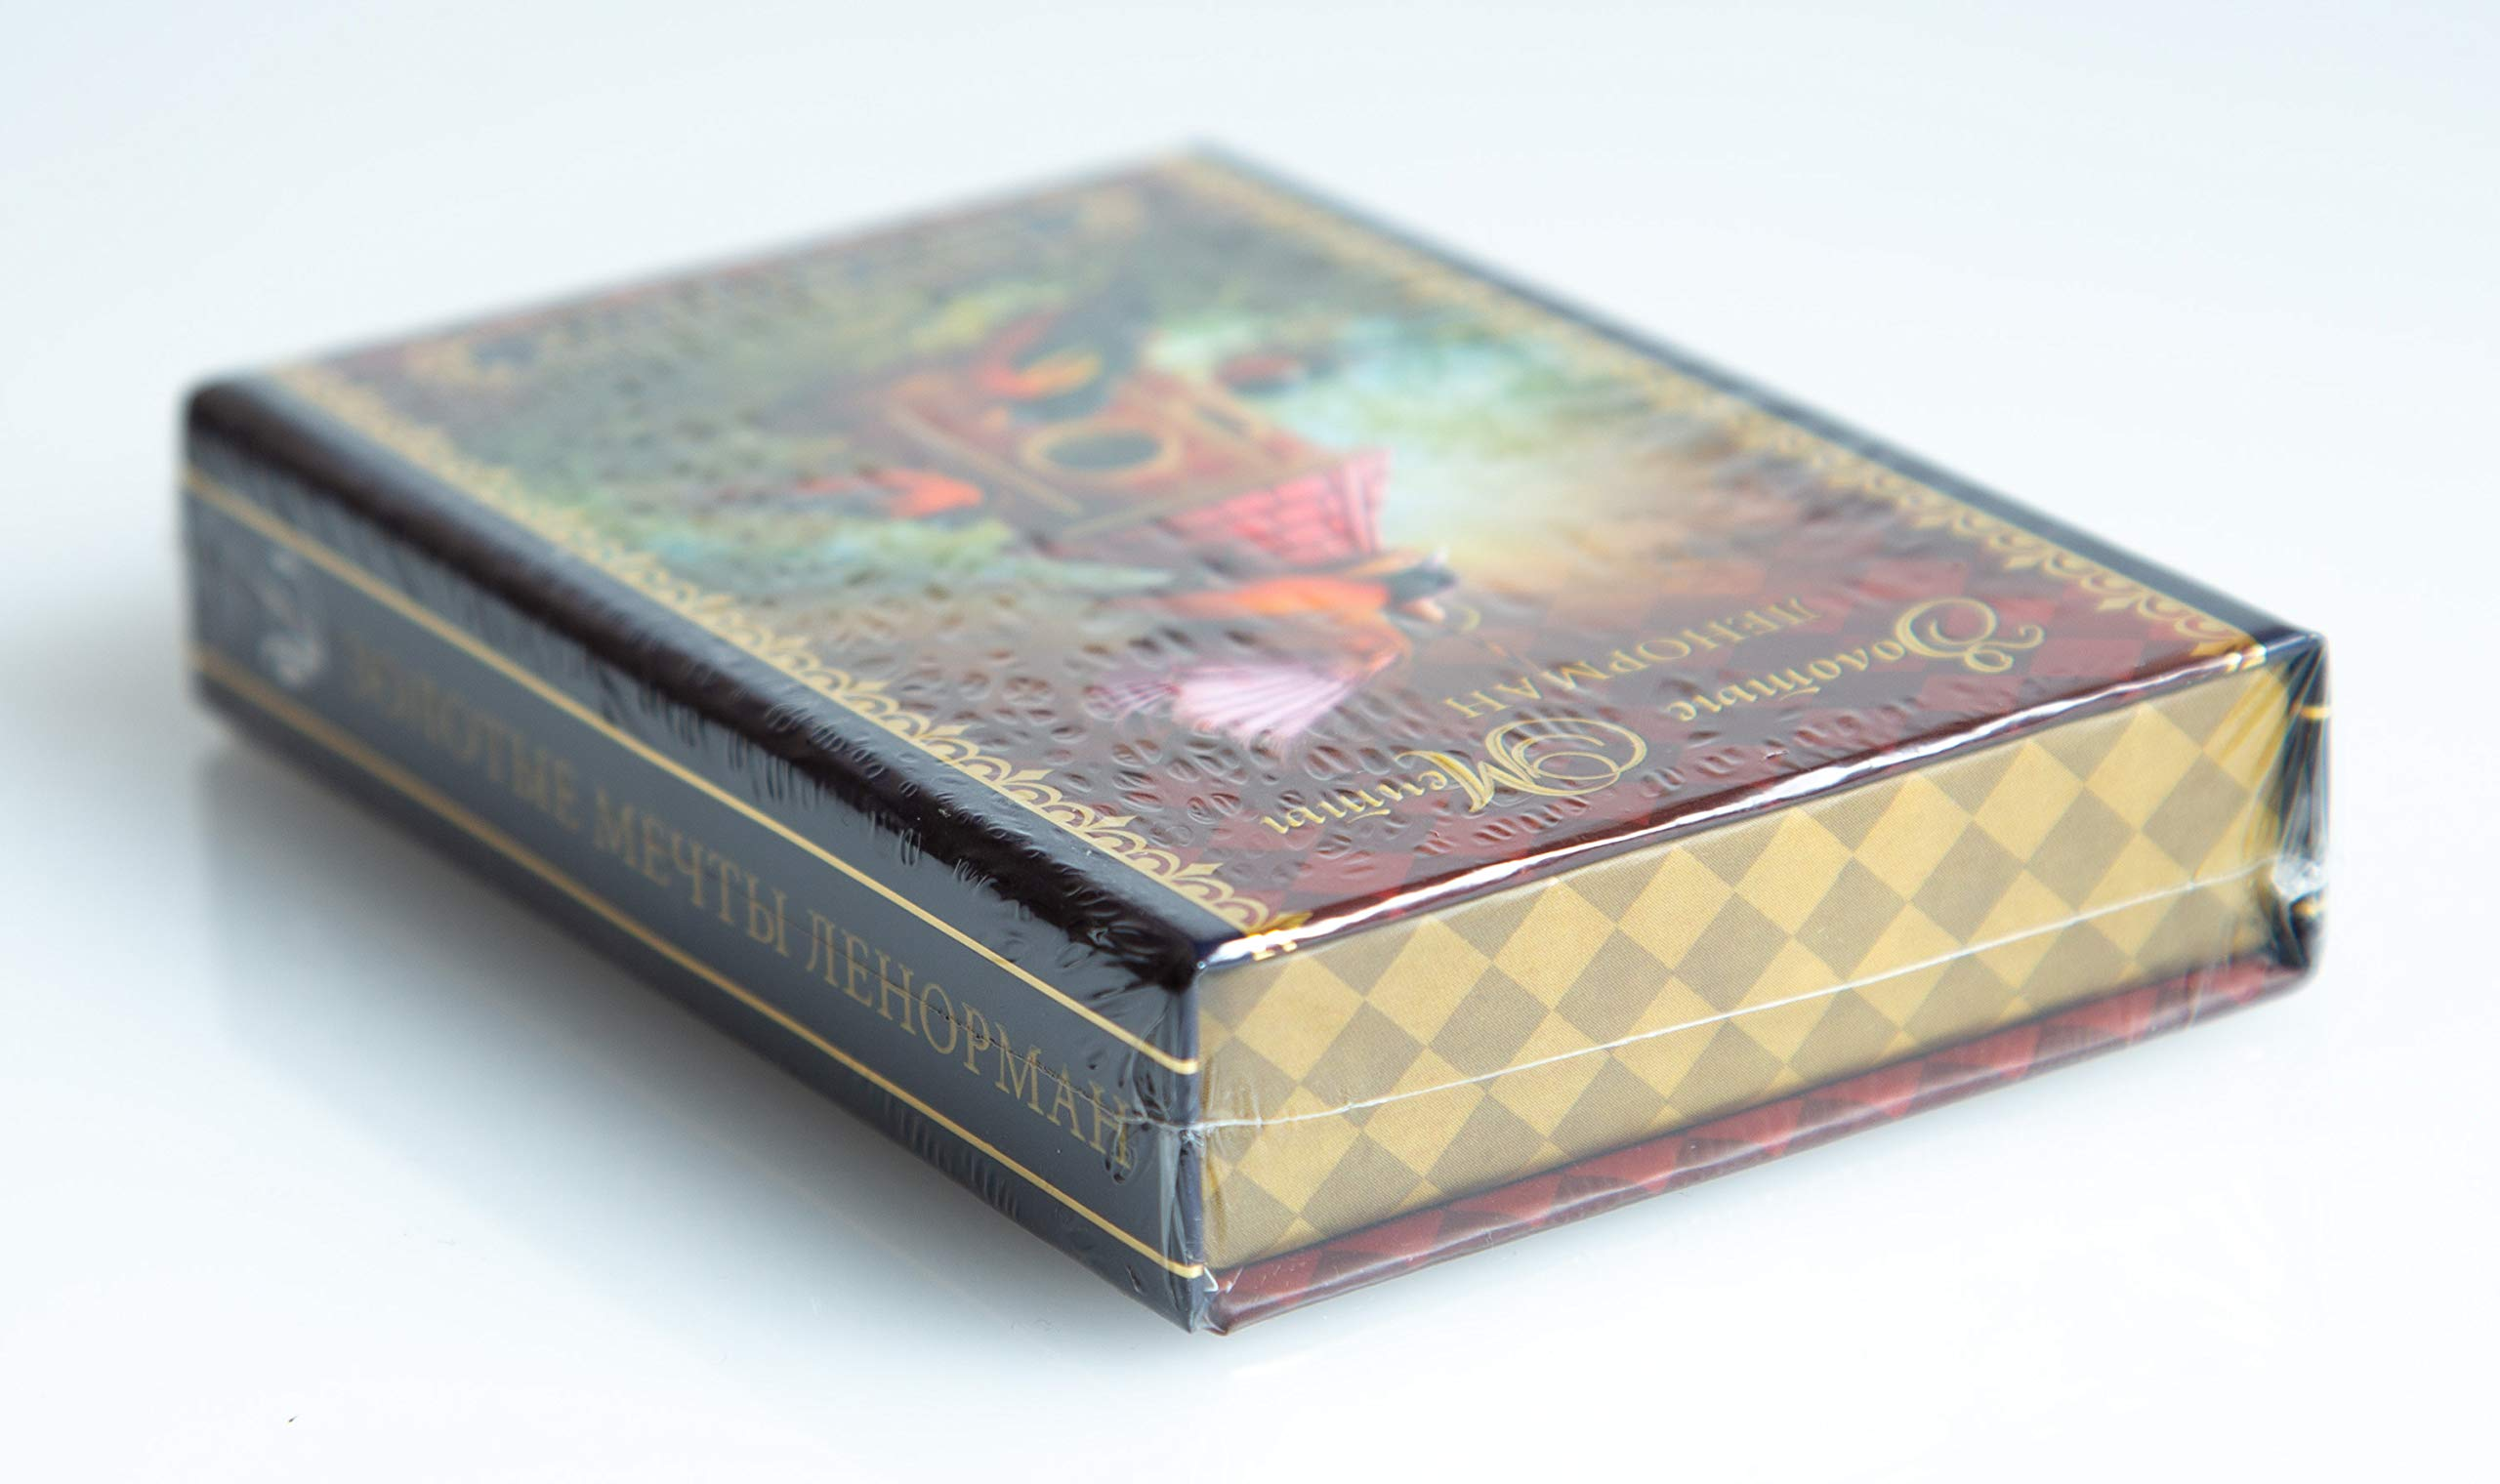 Gilded Reverie Lenormand by Chiro Marchetti 36 Tarot Card Deck Russian Edition (with Gold Trim) by Avvalon, Russia (Image #5)